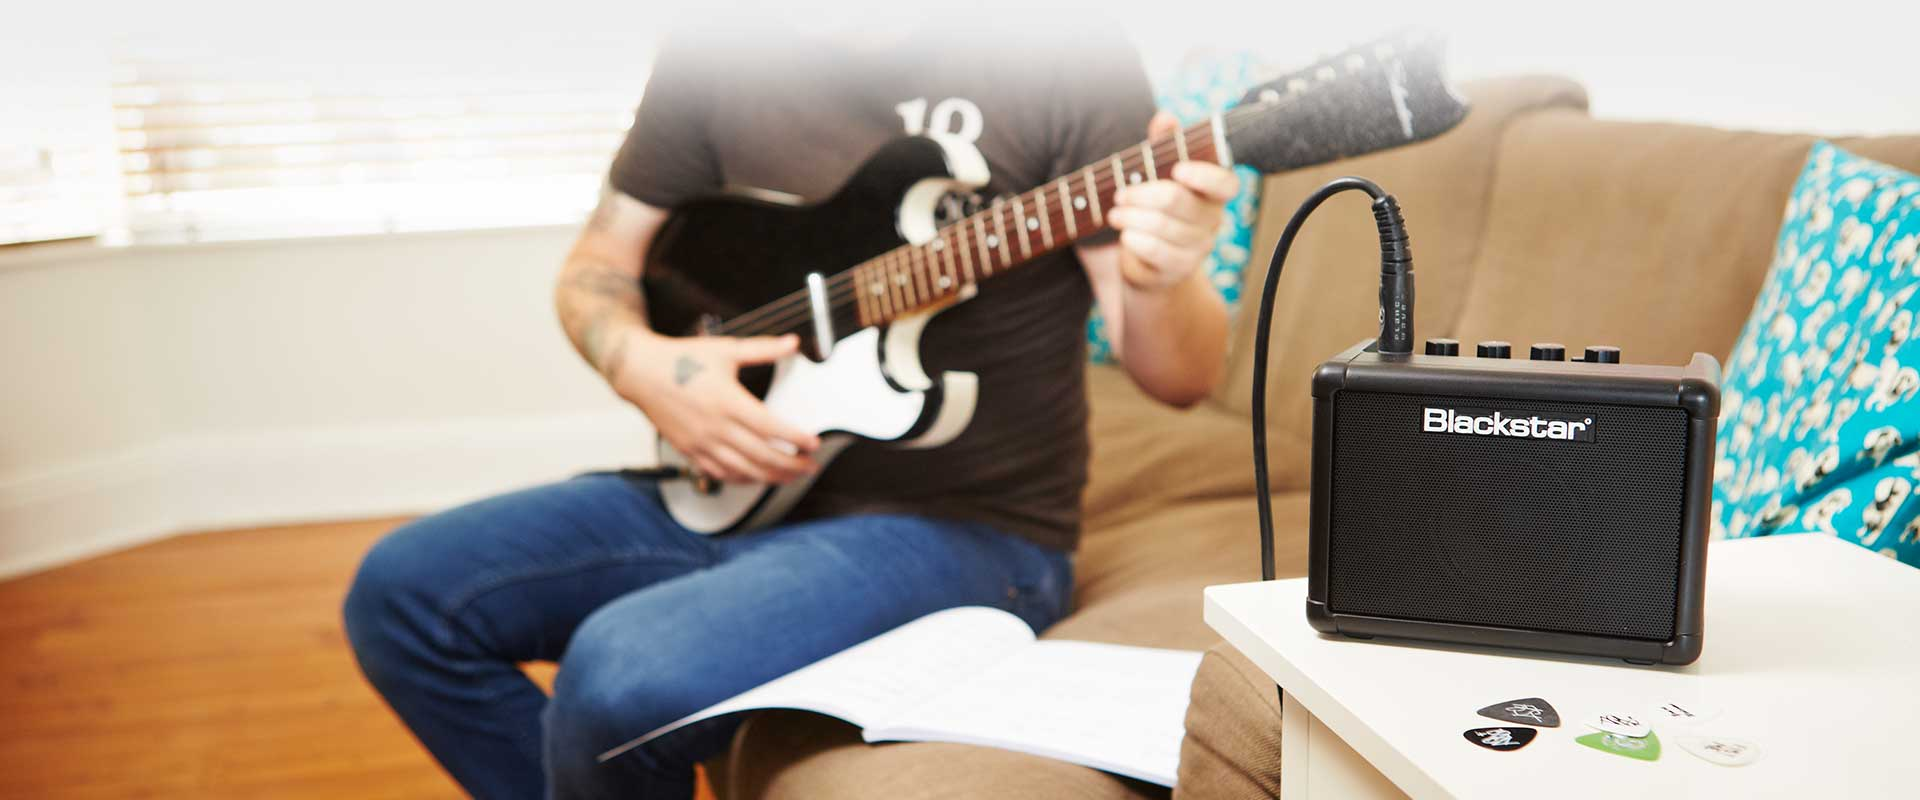 Top 12 Guitar Amps In 2018 Reviews Advice Make Original 100w Amp Best Compared Reviewed